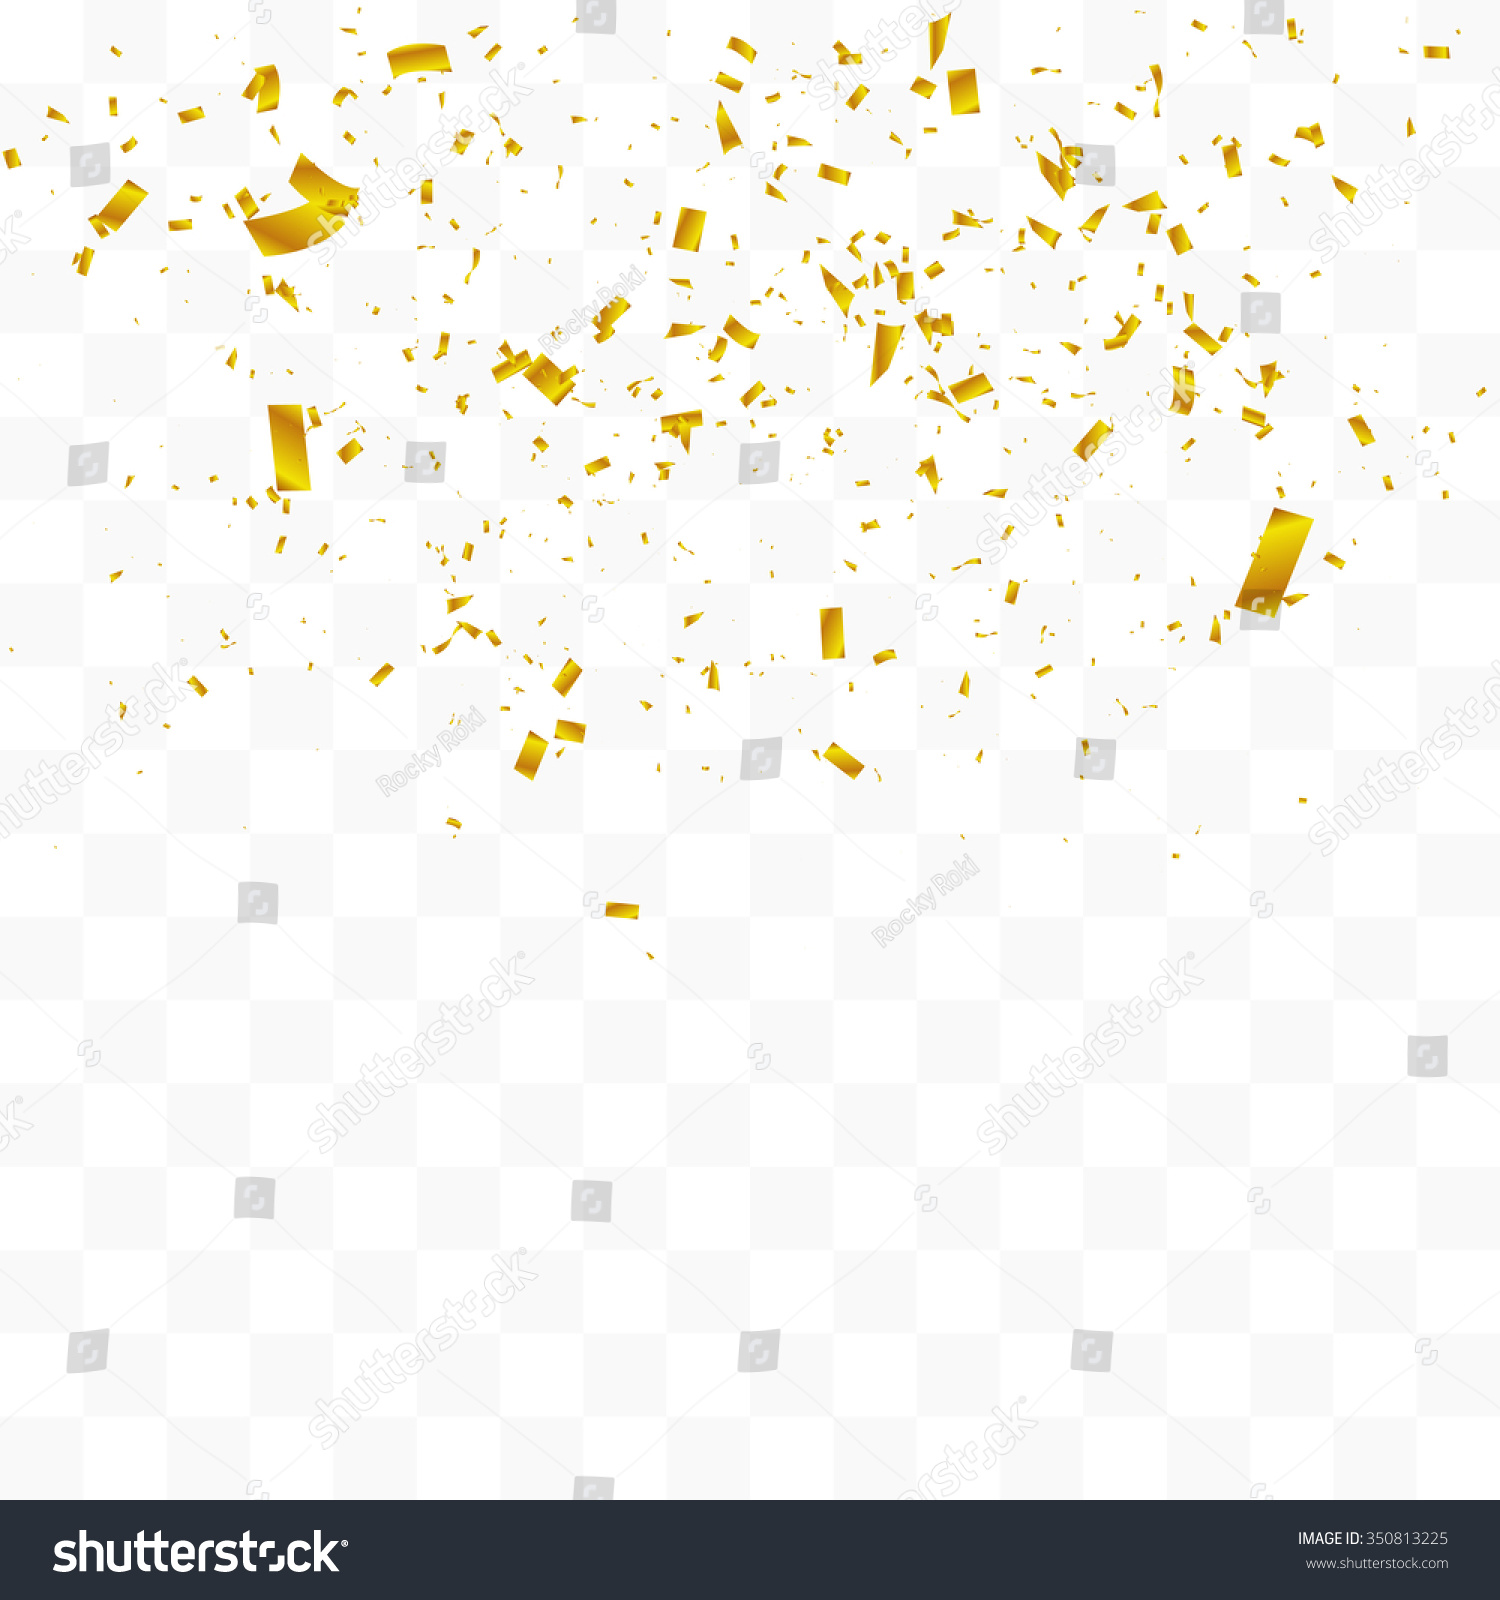 gold confetti falling abstract background with many falling gold tiny confetti 1360